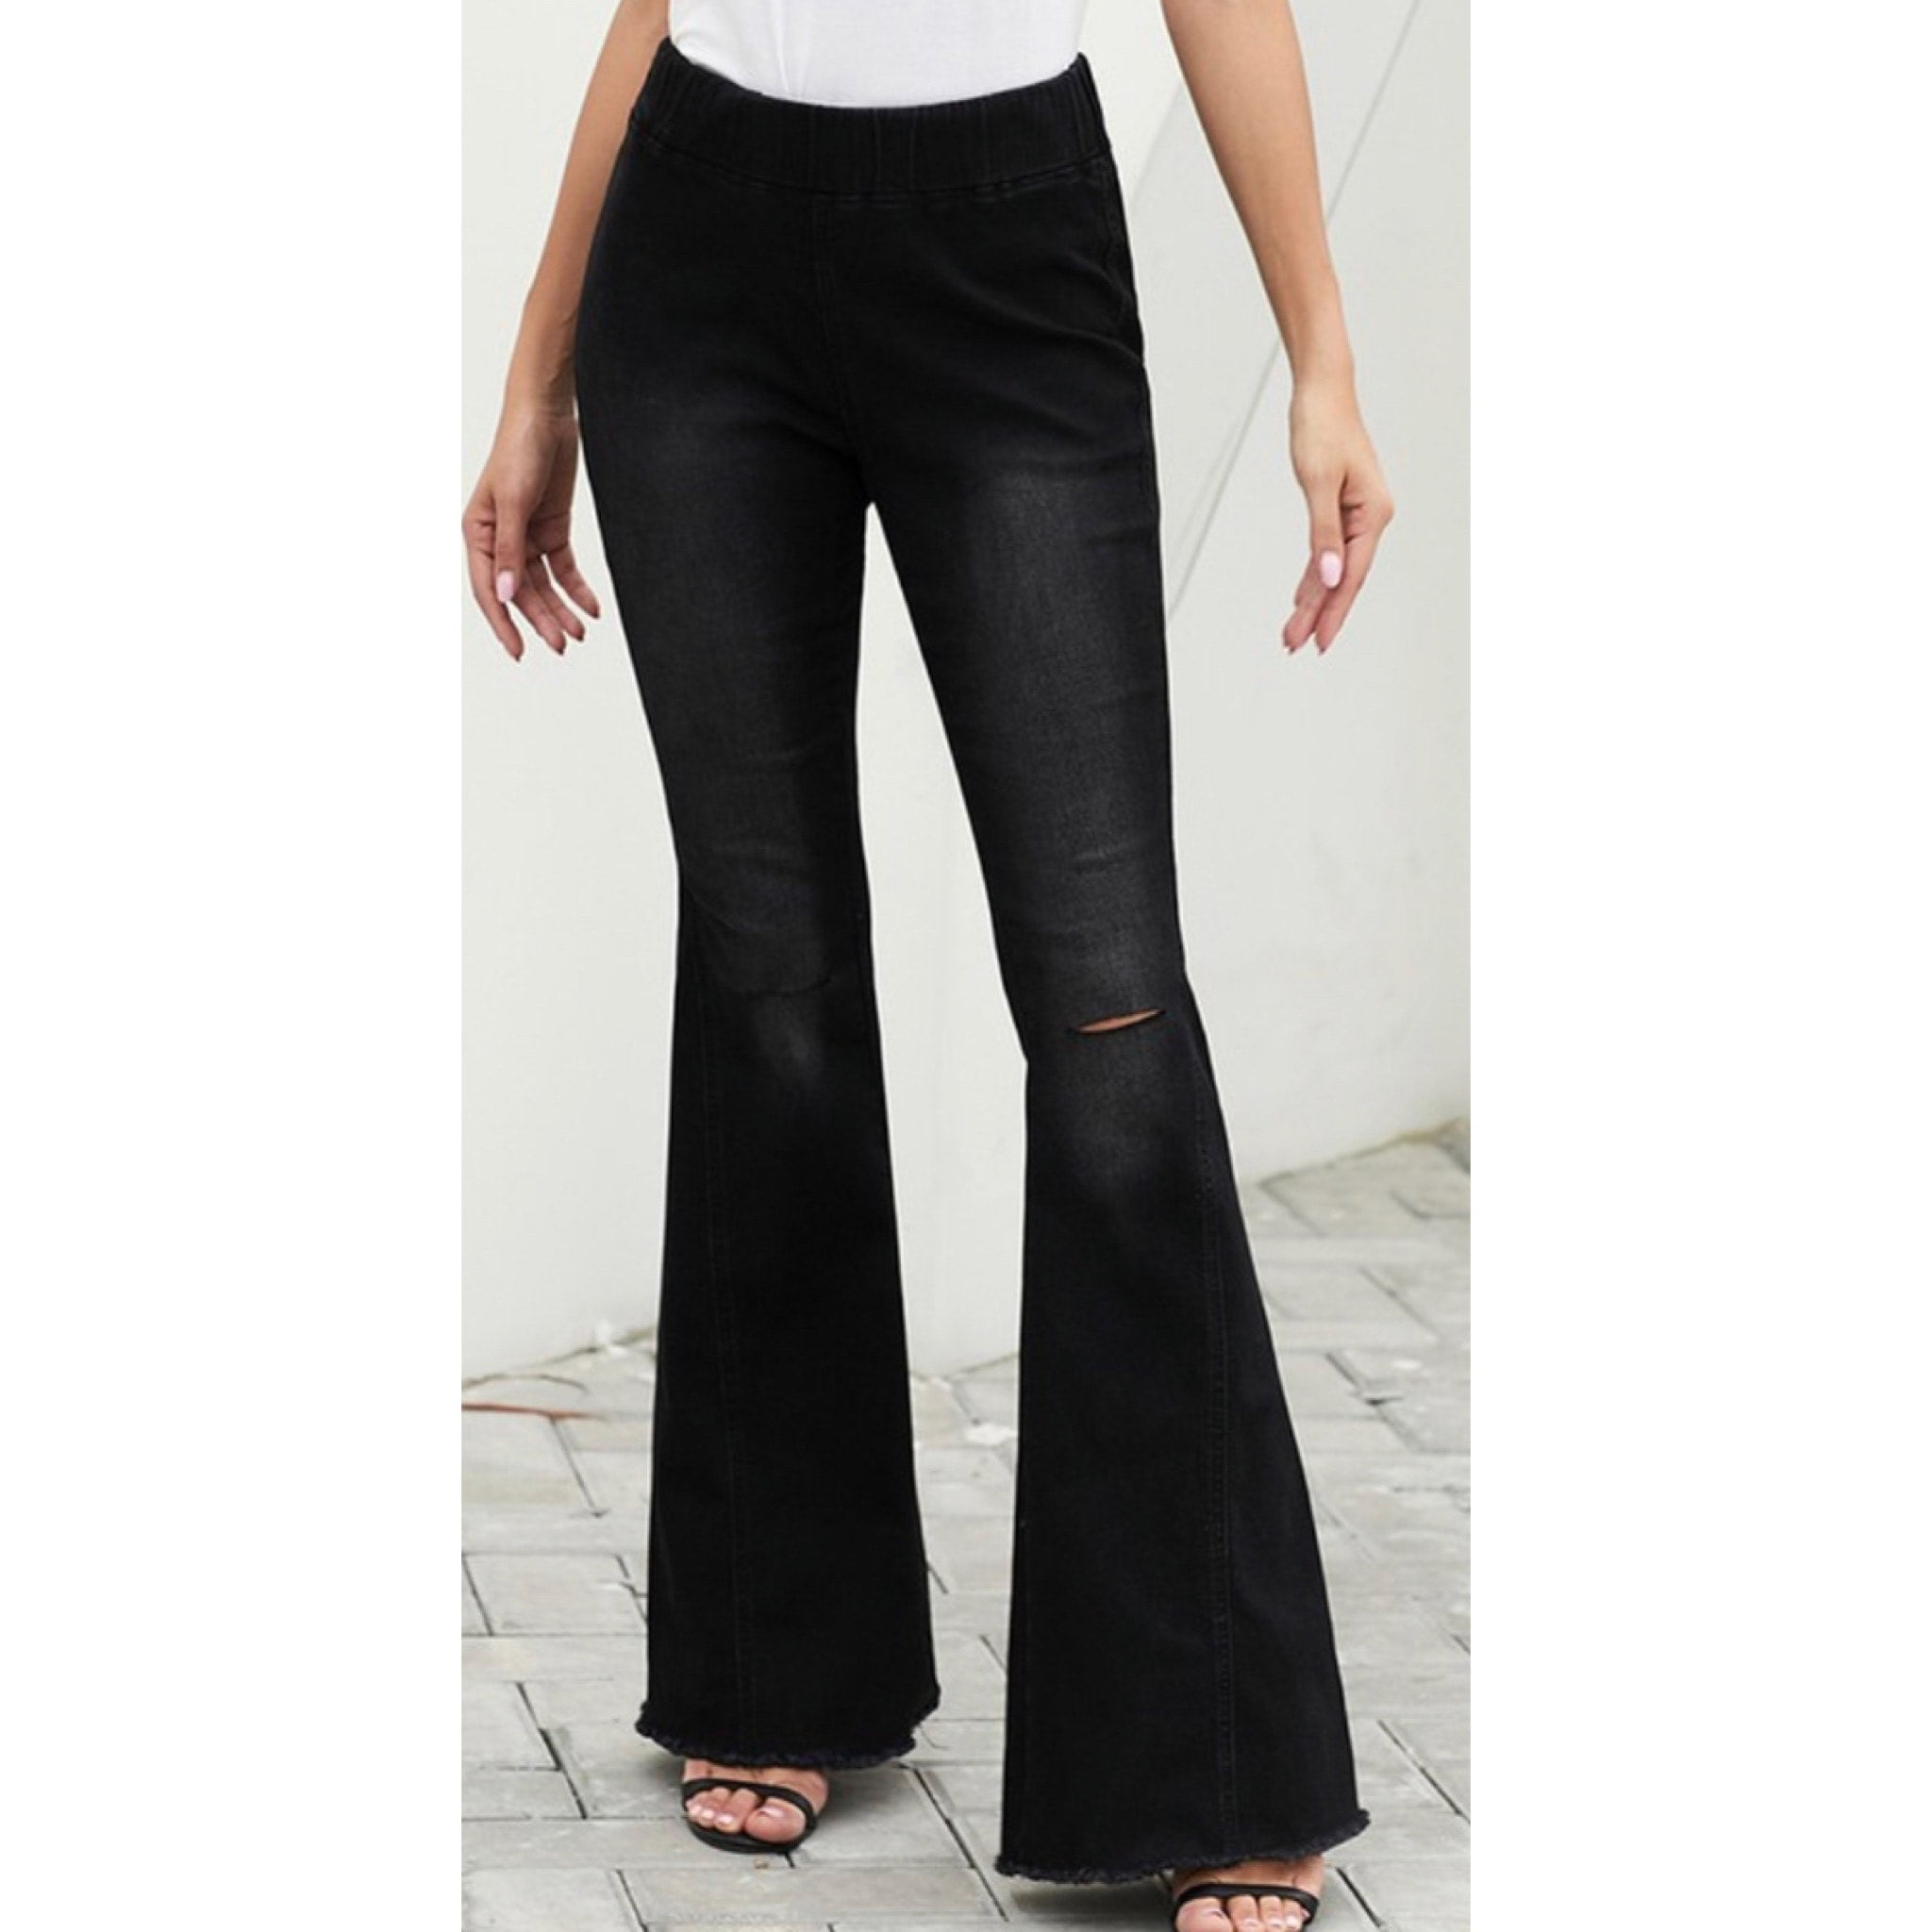 Black Bell Bottom Flare Denim Jeans